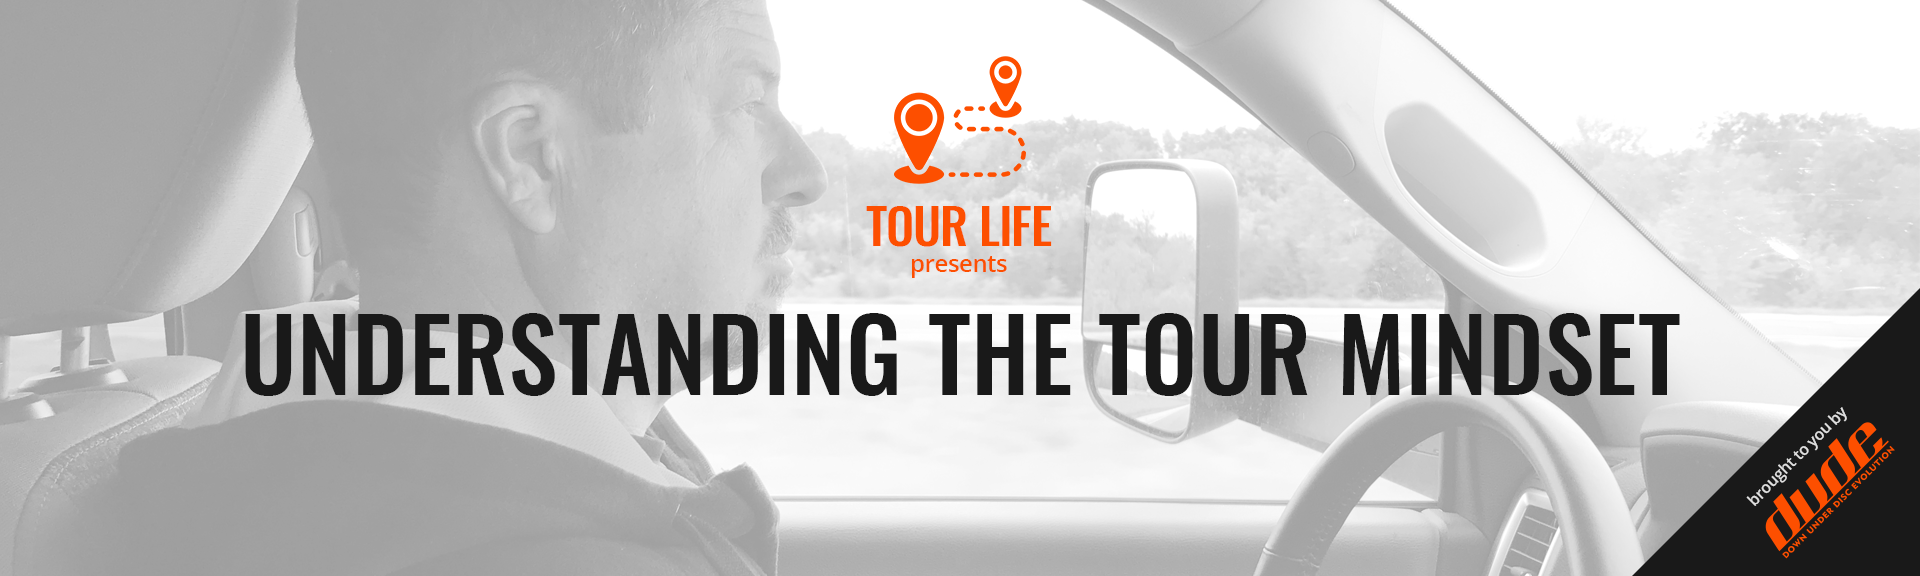 Dude Clothing Tour Life Understanding the tour mindset